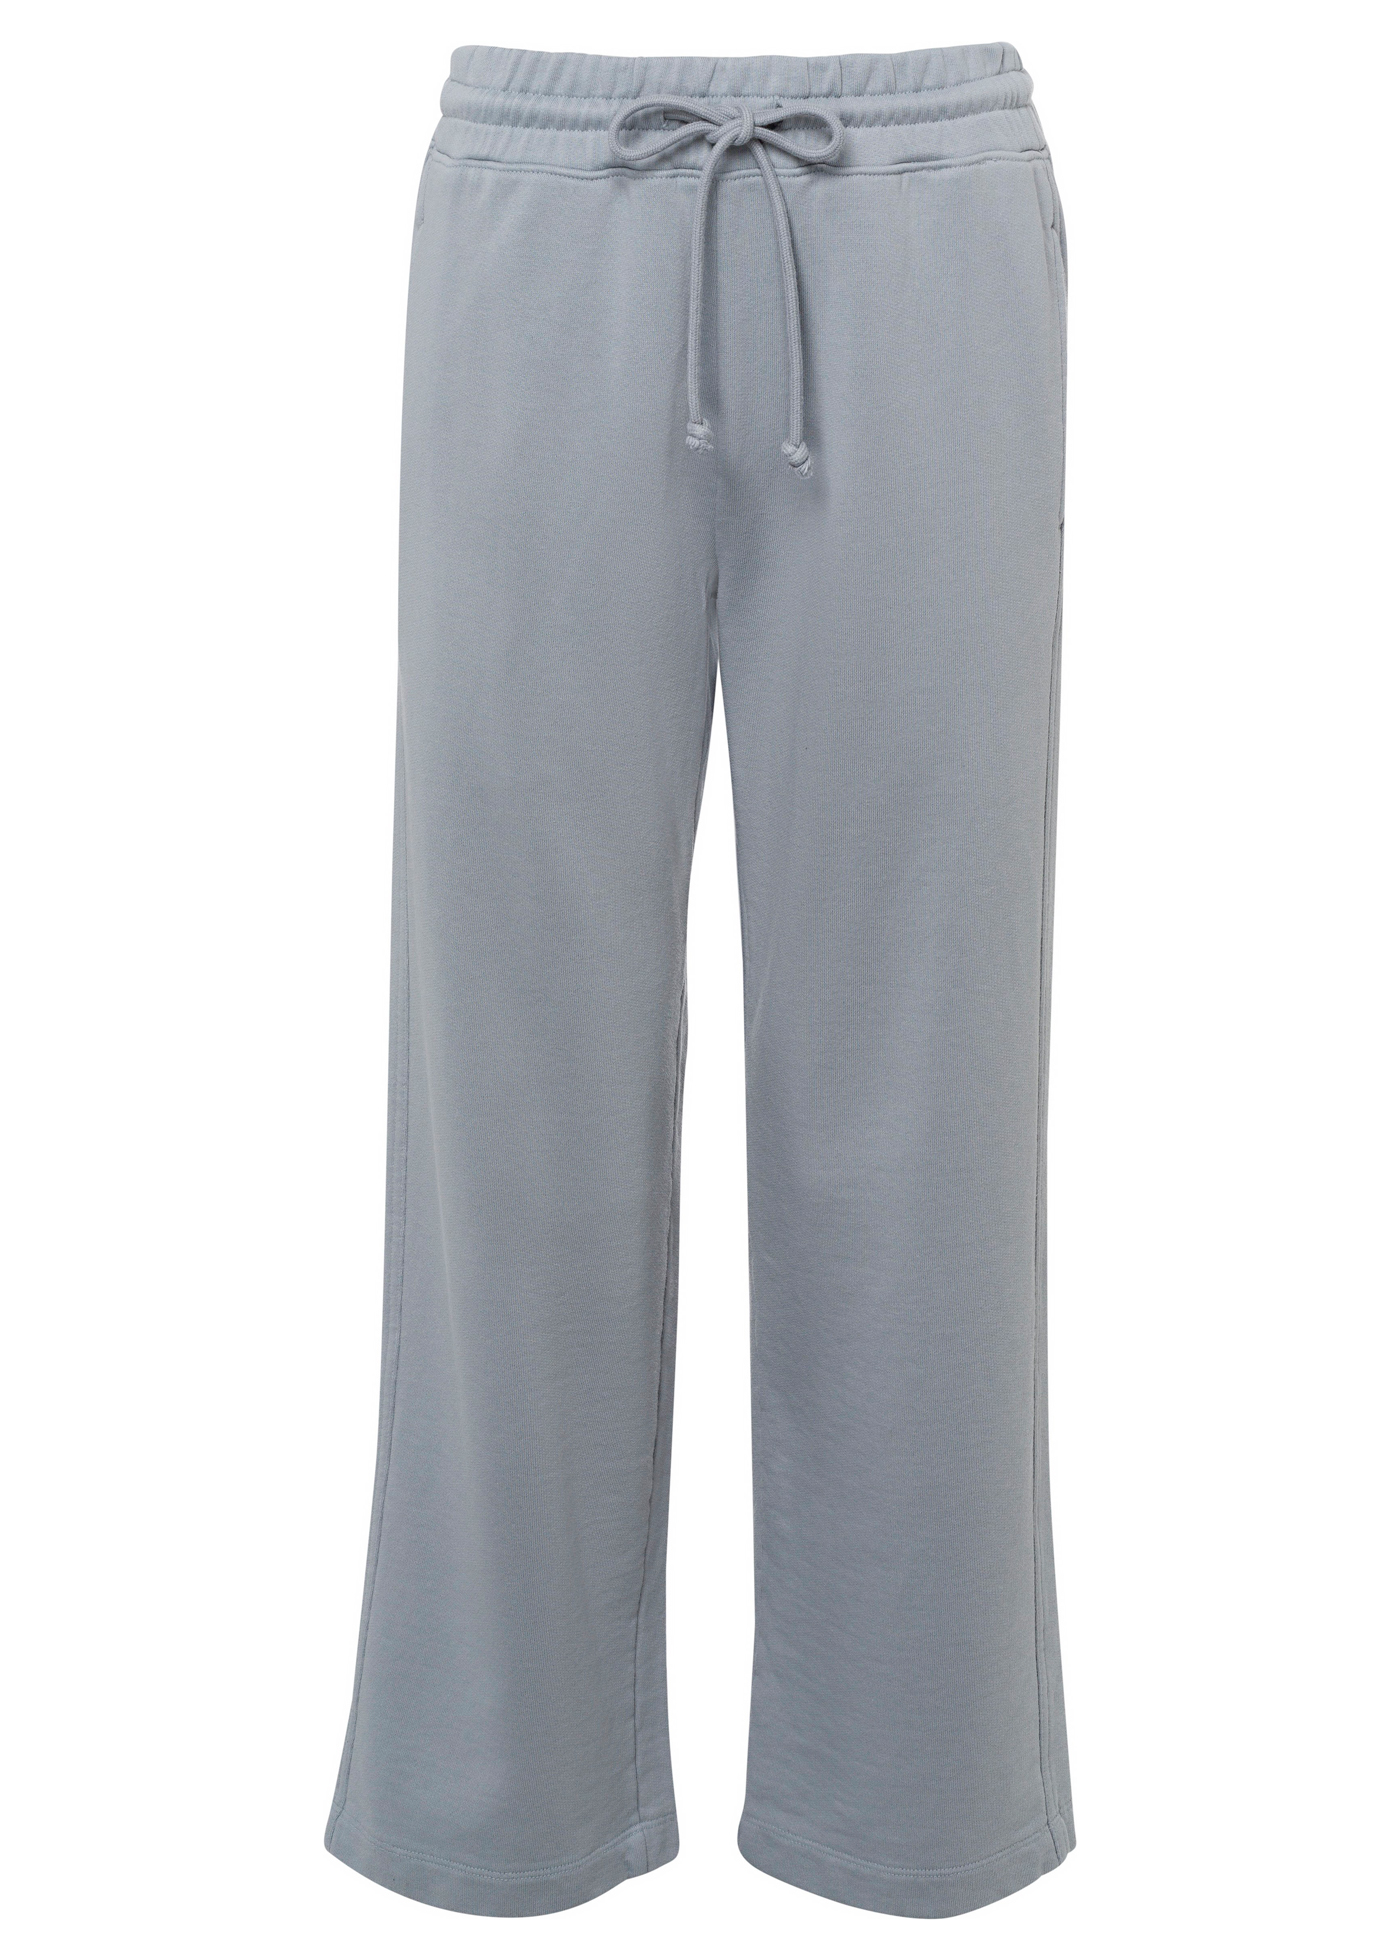 CROPPED PANT / CROPPED PANT image number 0